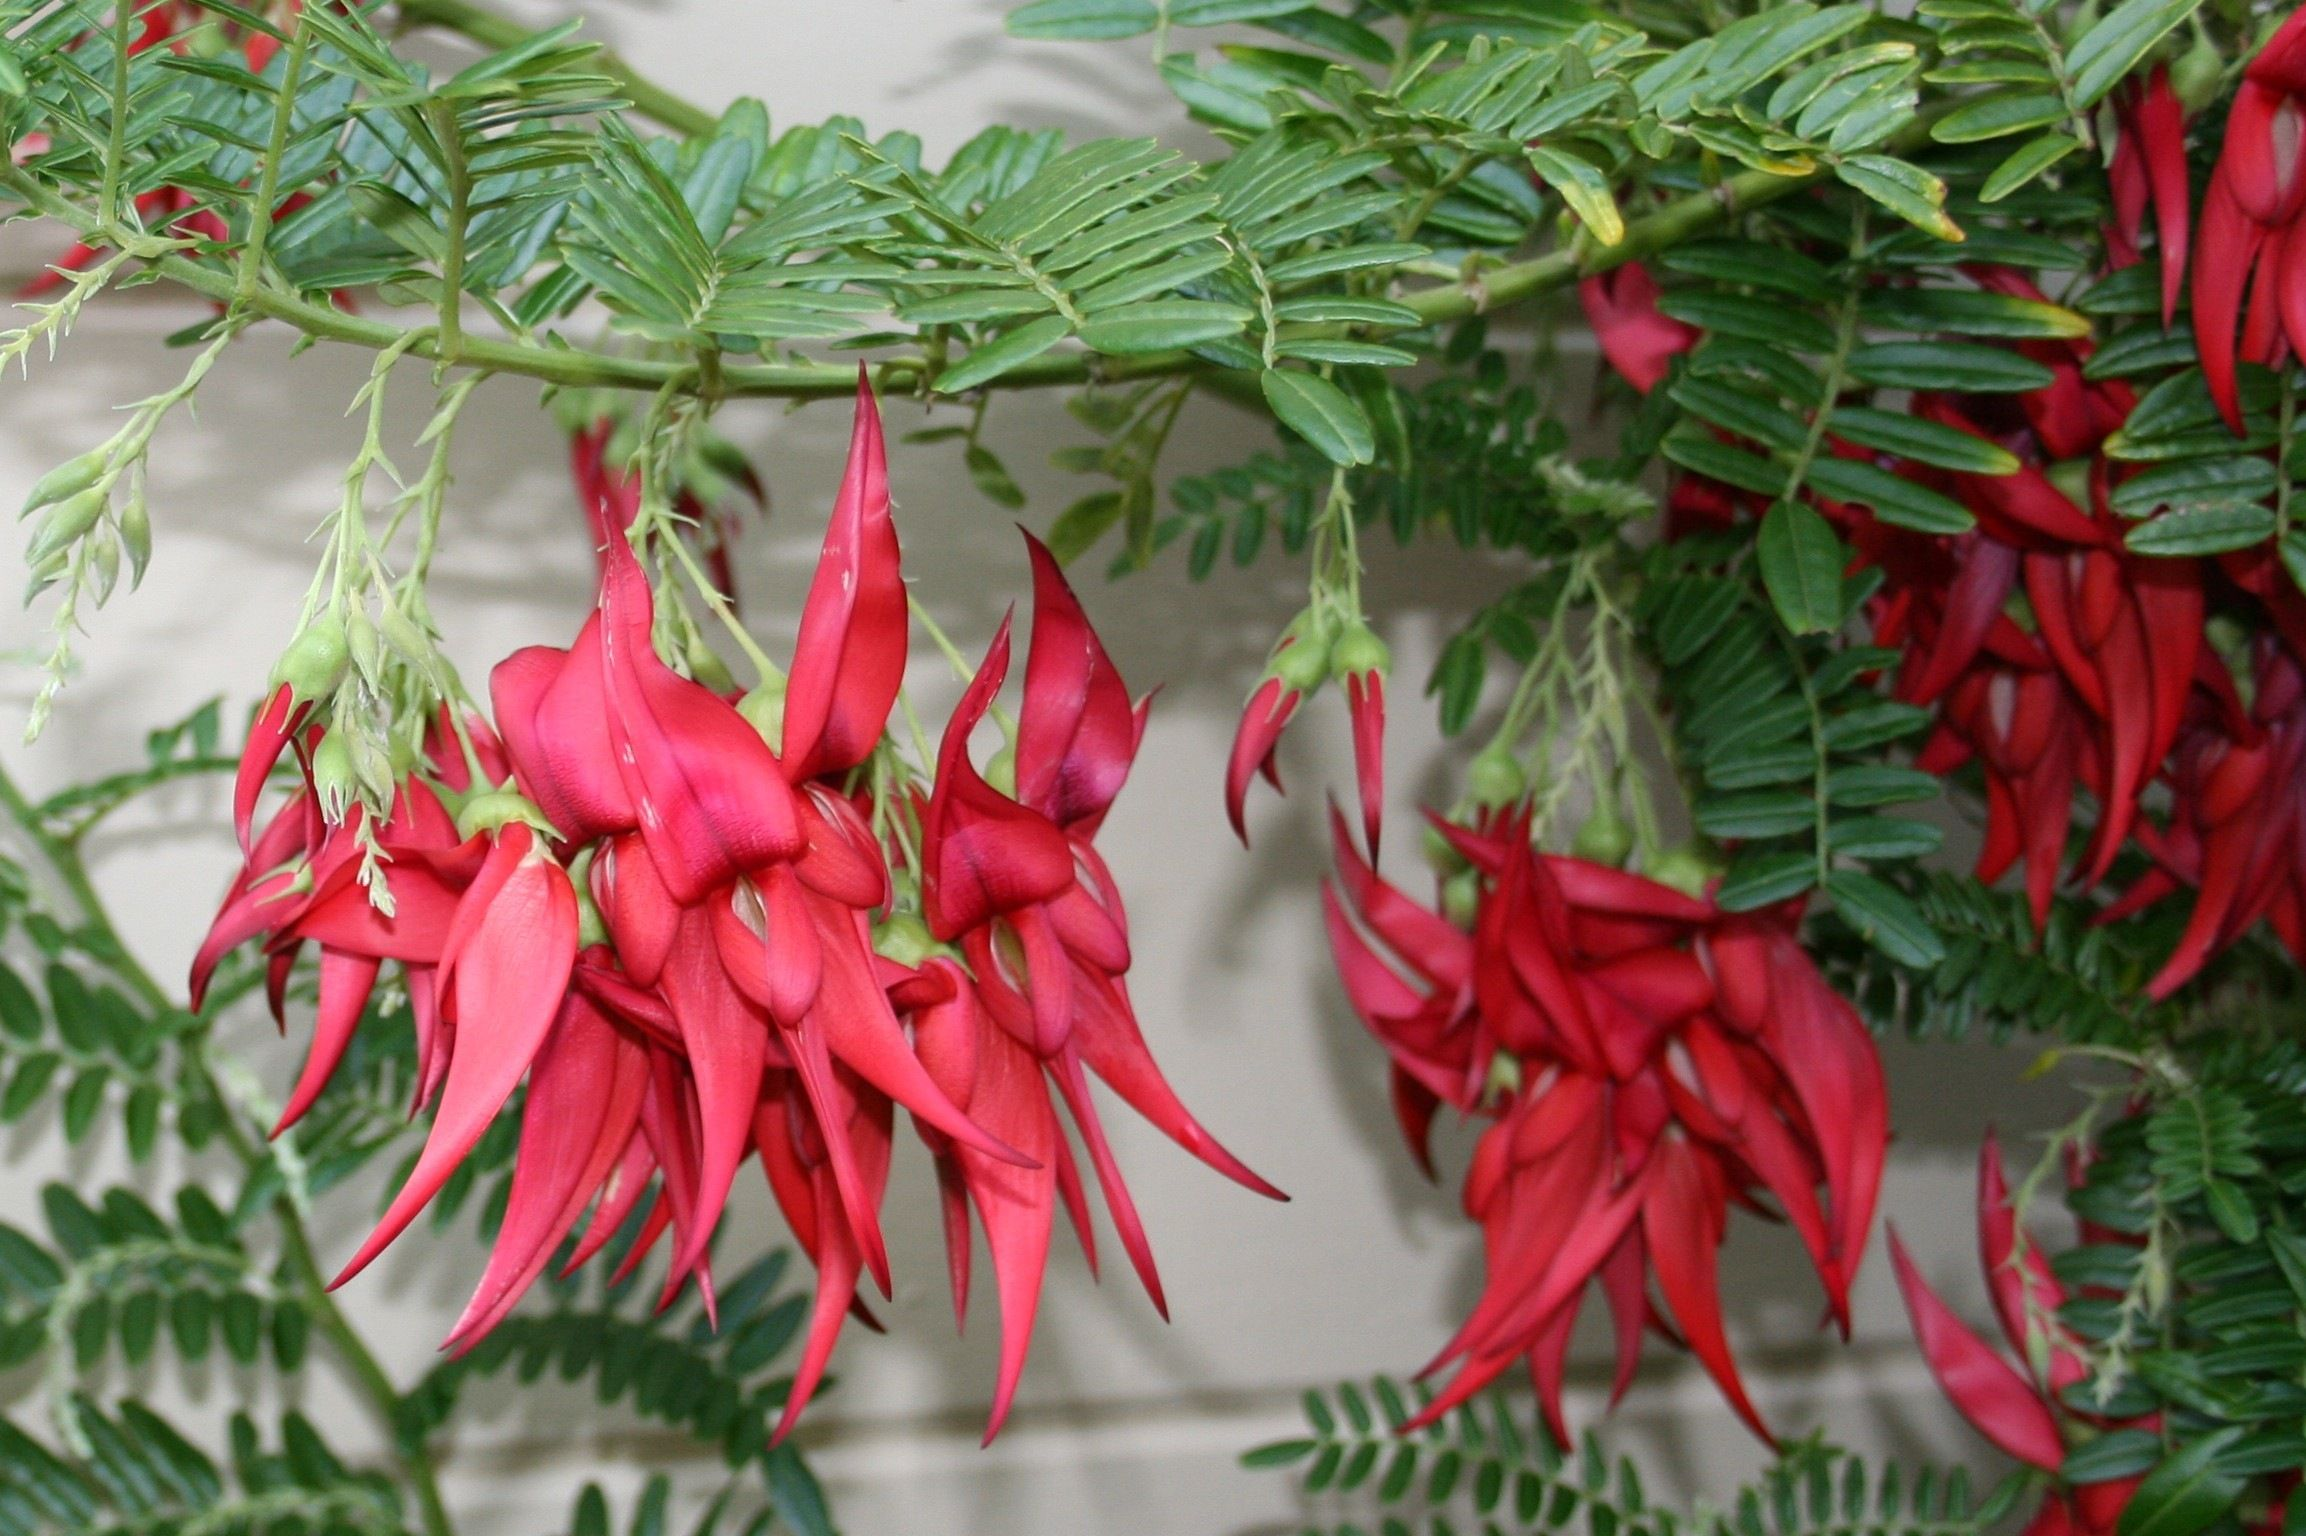 Shamelessly Tropical Hawt Plants for a Variety of